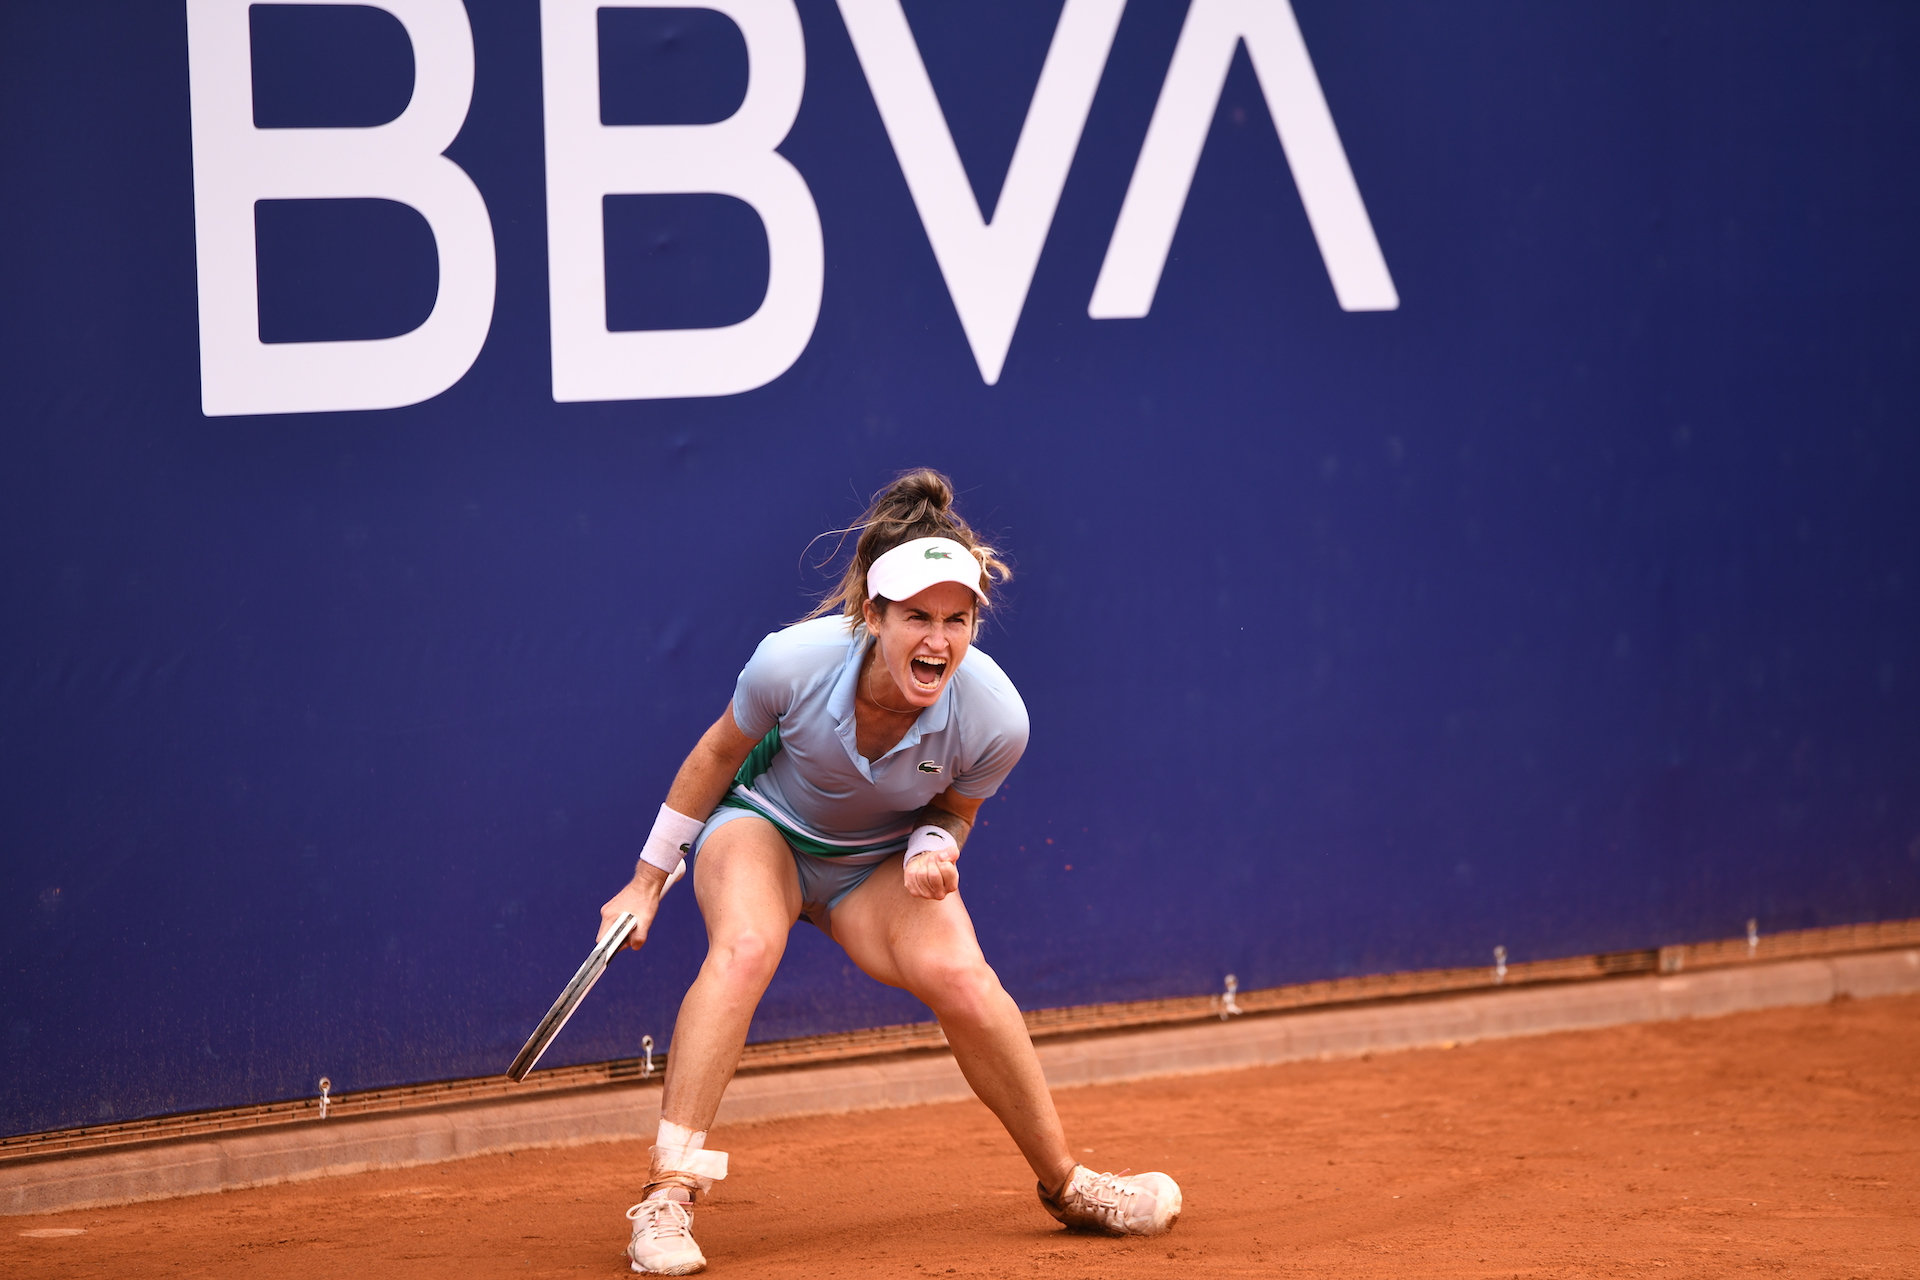 THE BBVA INTERNATIONAL OPEN OF VALENCIA OPENS THE MAIN DRAW AWAITING THE FAVORITES